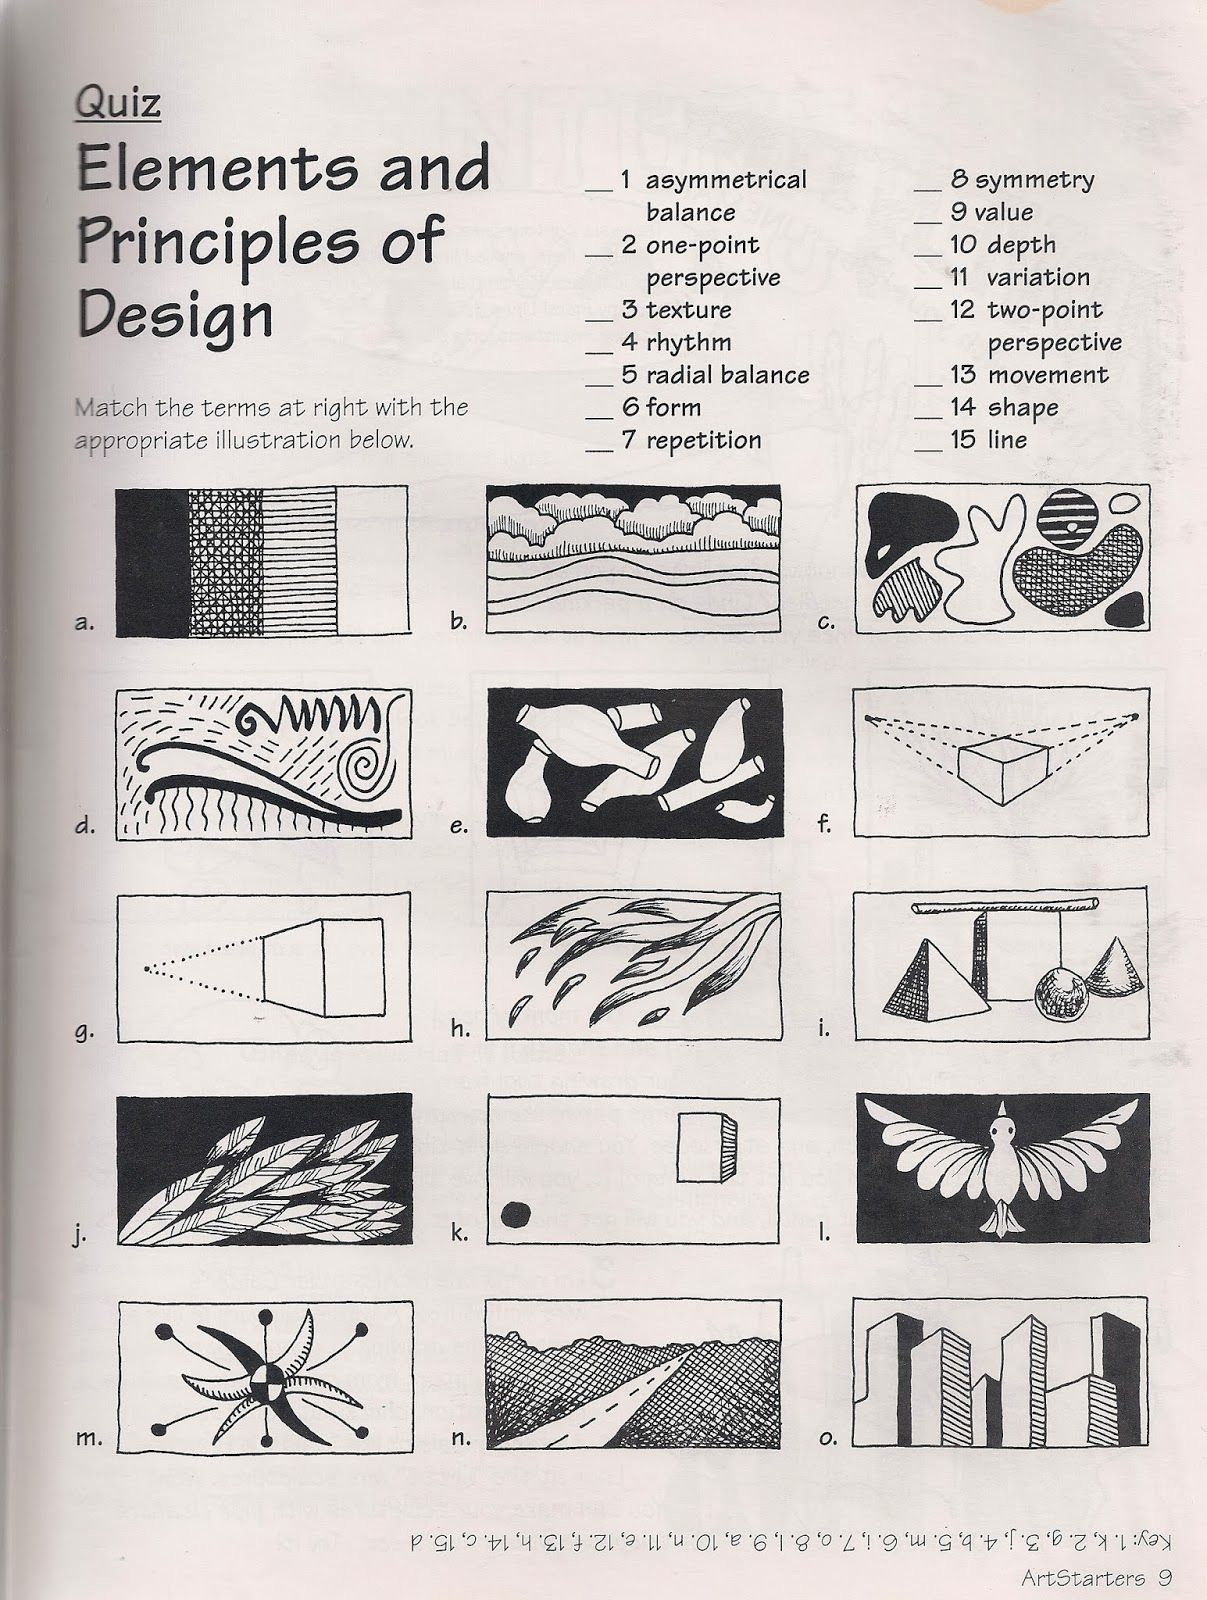 Visual Elements And Principles : No corner suns the elements and principles of art free